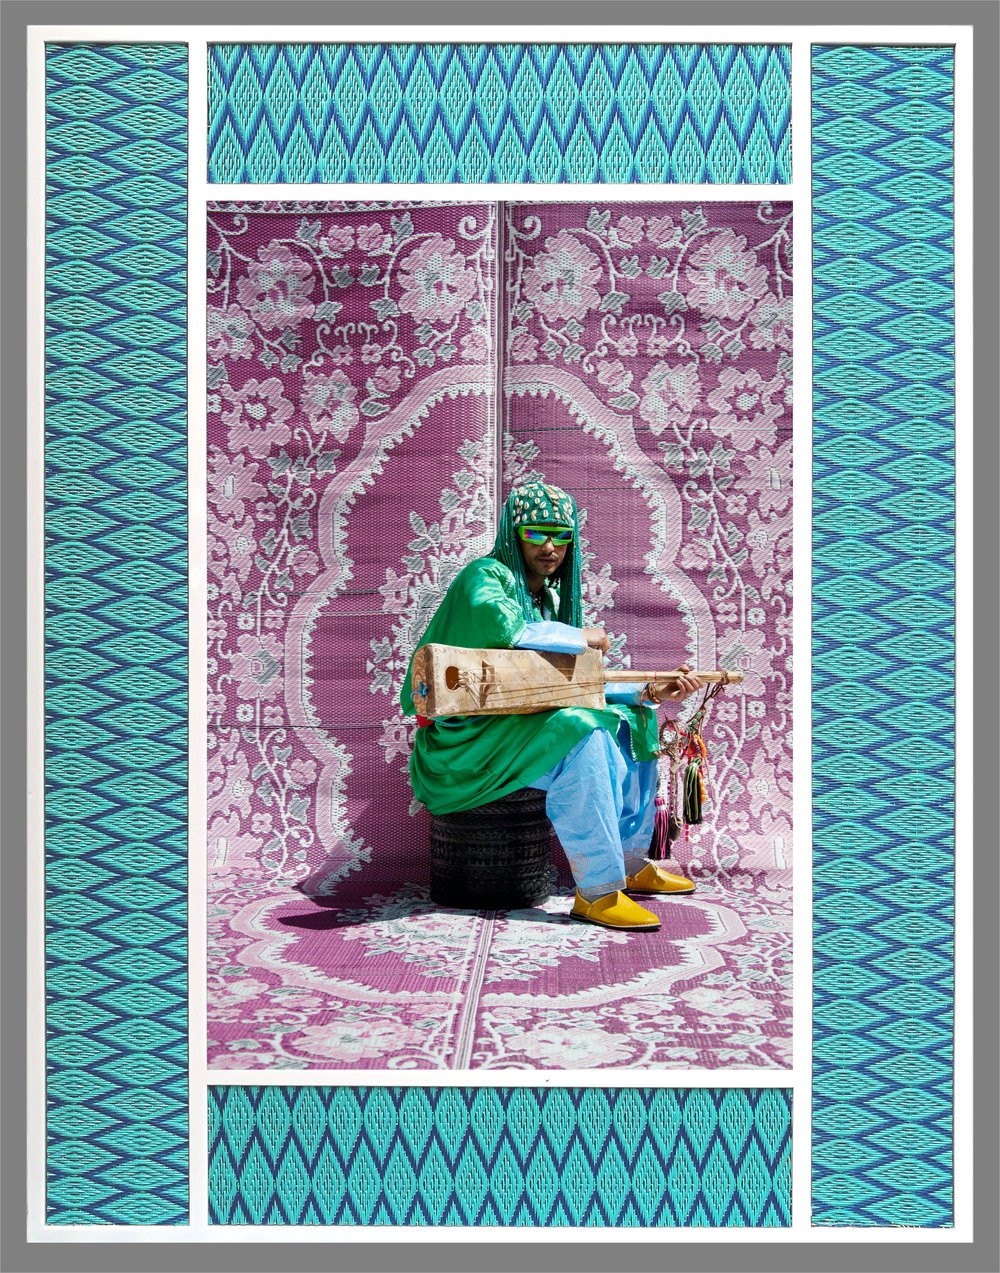 Hassan Hajjaj,  Maalem Simo Lagnawi , 2010, 19 x 28.5 in.Metallic lambda print on dibond with wood and plastic matImage, Courtesy of the artist and Aicon Gallery, New York